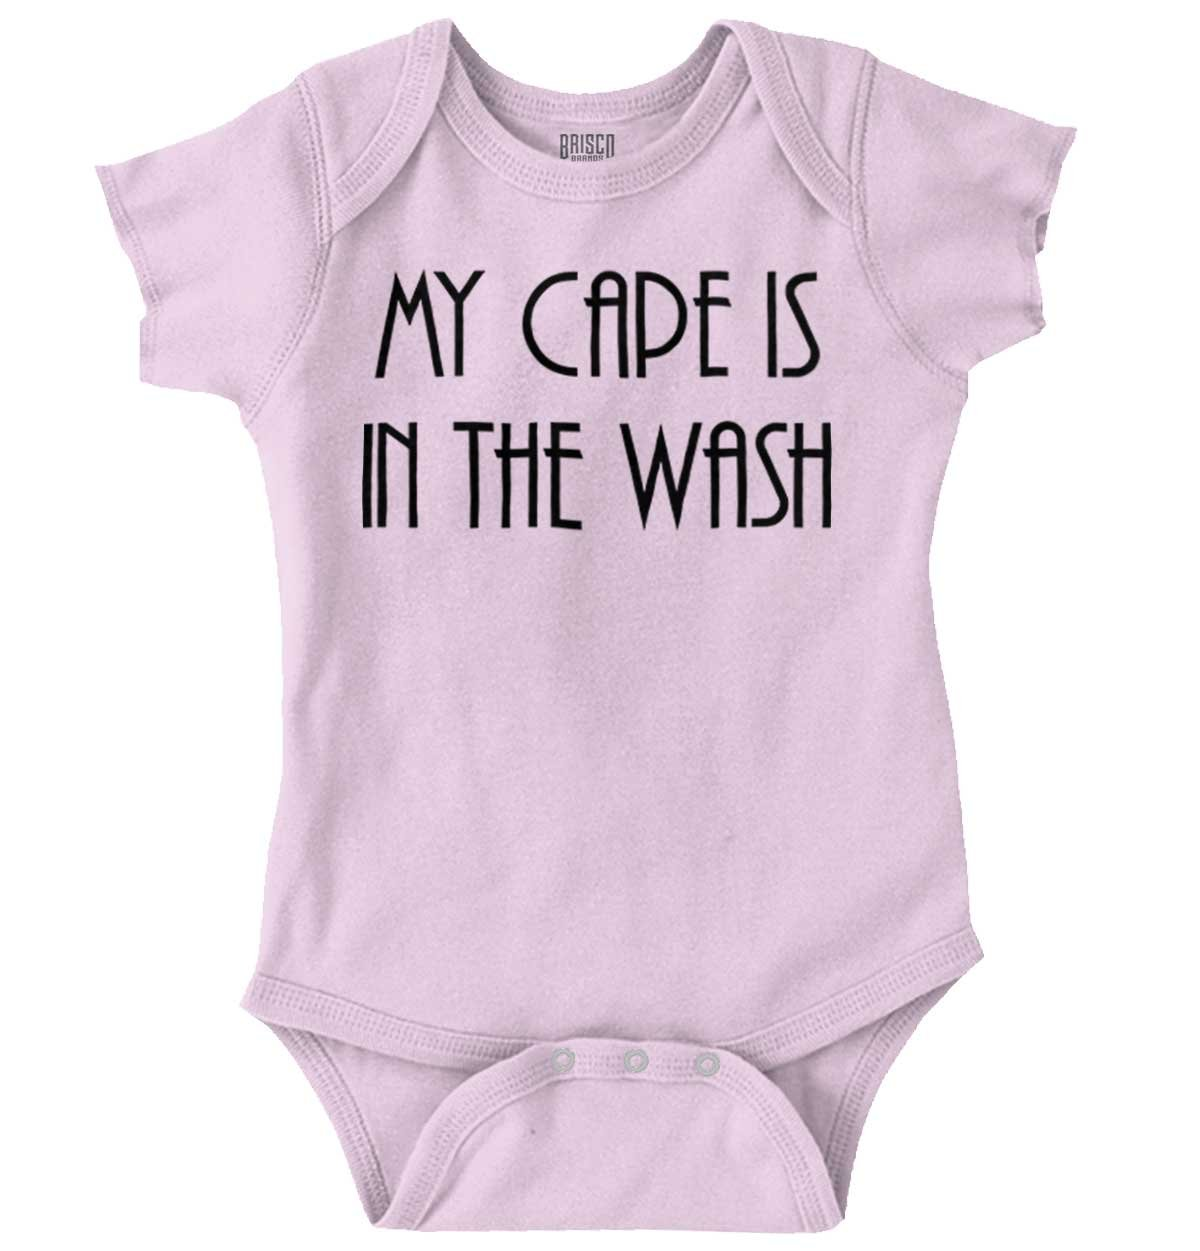 Cape in Wash Funny Shirt Cute Baby Superhero Lego